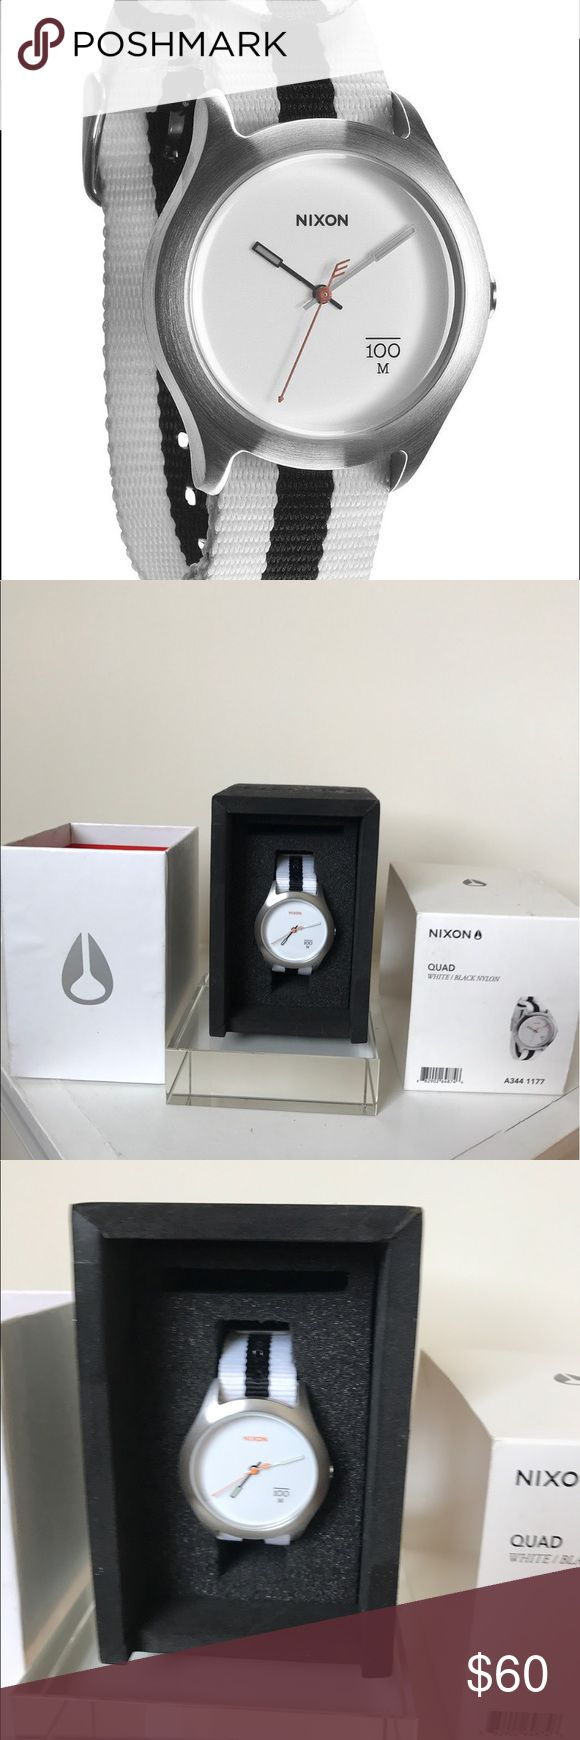 Nixon Watch Great Nixon watch Quad ⌚️ in great condition. Comes with the original box 📦 and watch instructions. The battery has expired, but I am willing to provide the replacement and ensure this is in working condition. Don't let this deal go by! Make an offer! Nixon Accessories Watches